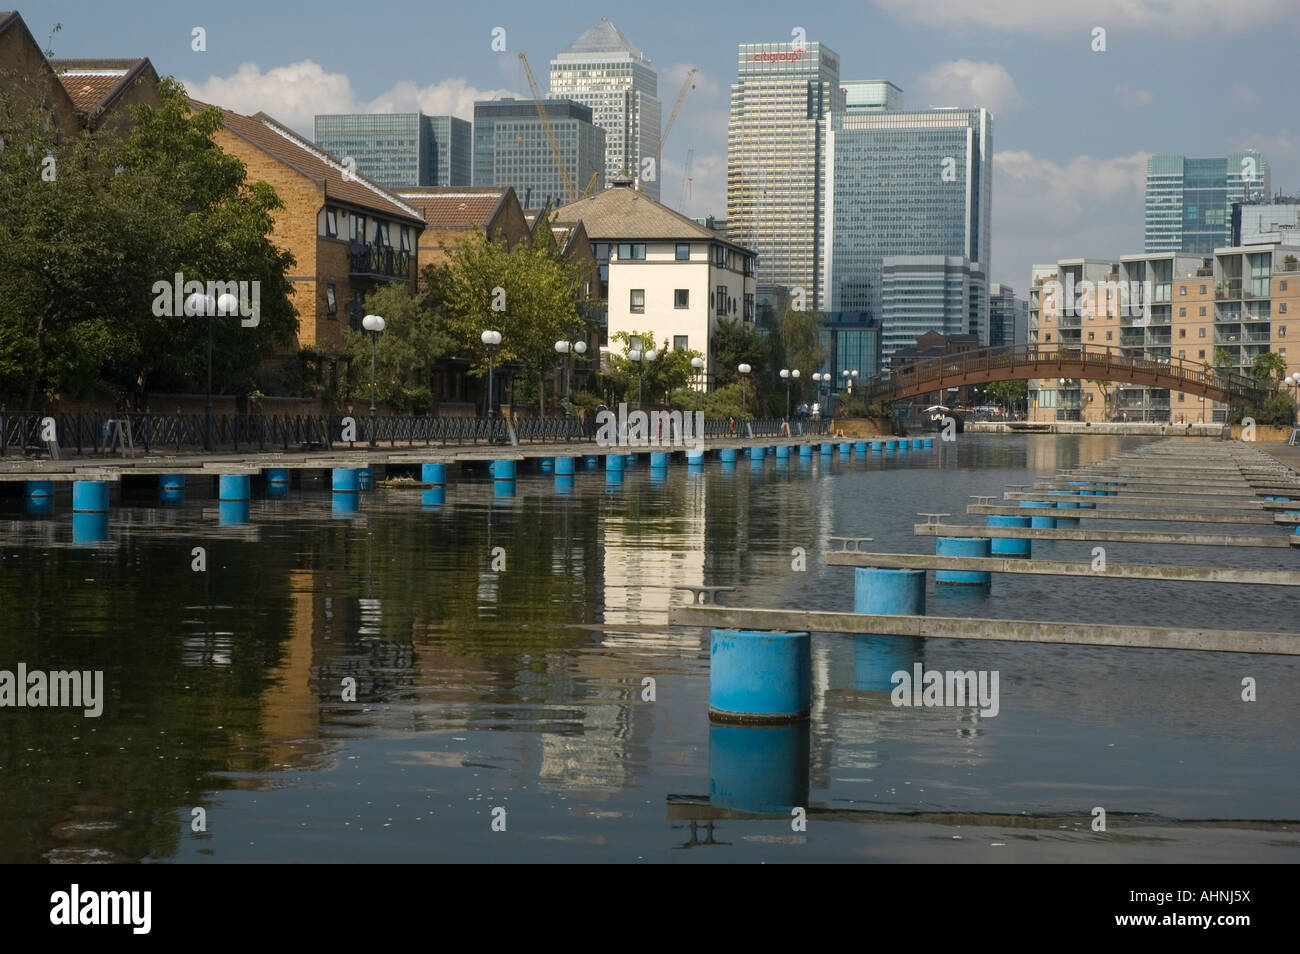 Millwall Dock with Canary Wharf in the background, Isle of Dogs, East London. - Stock Image